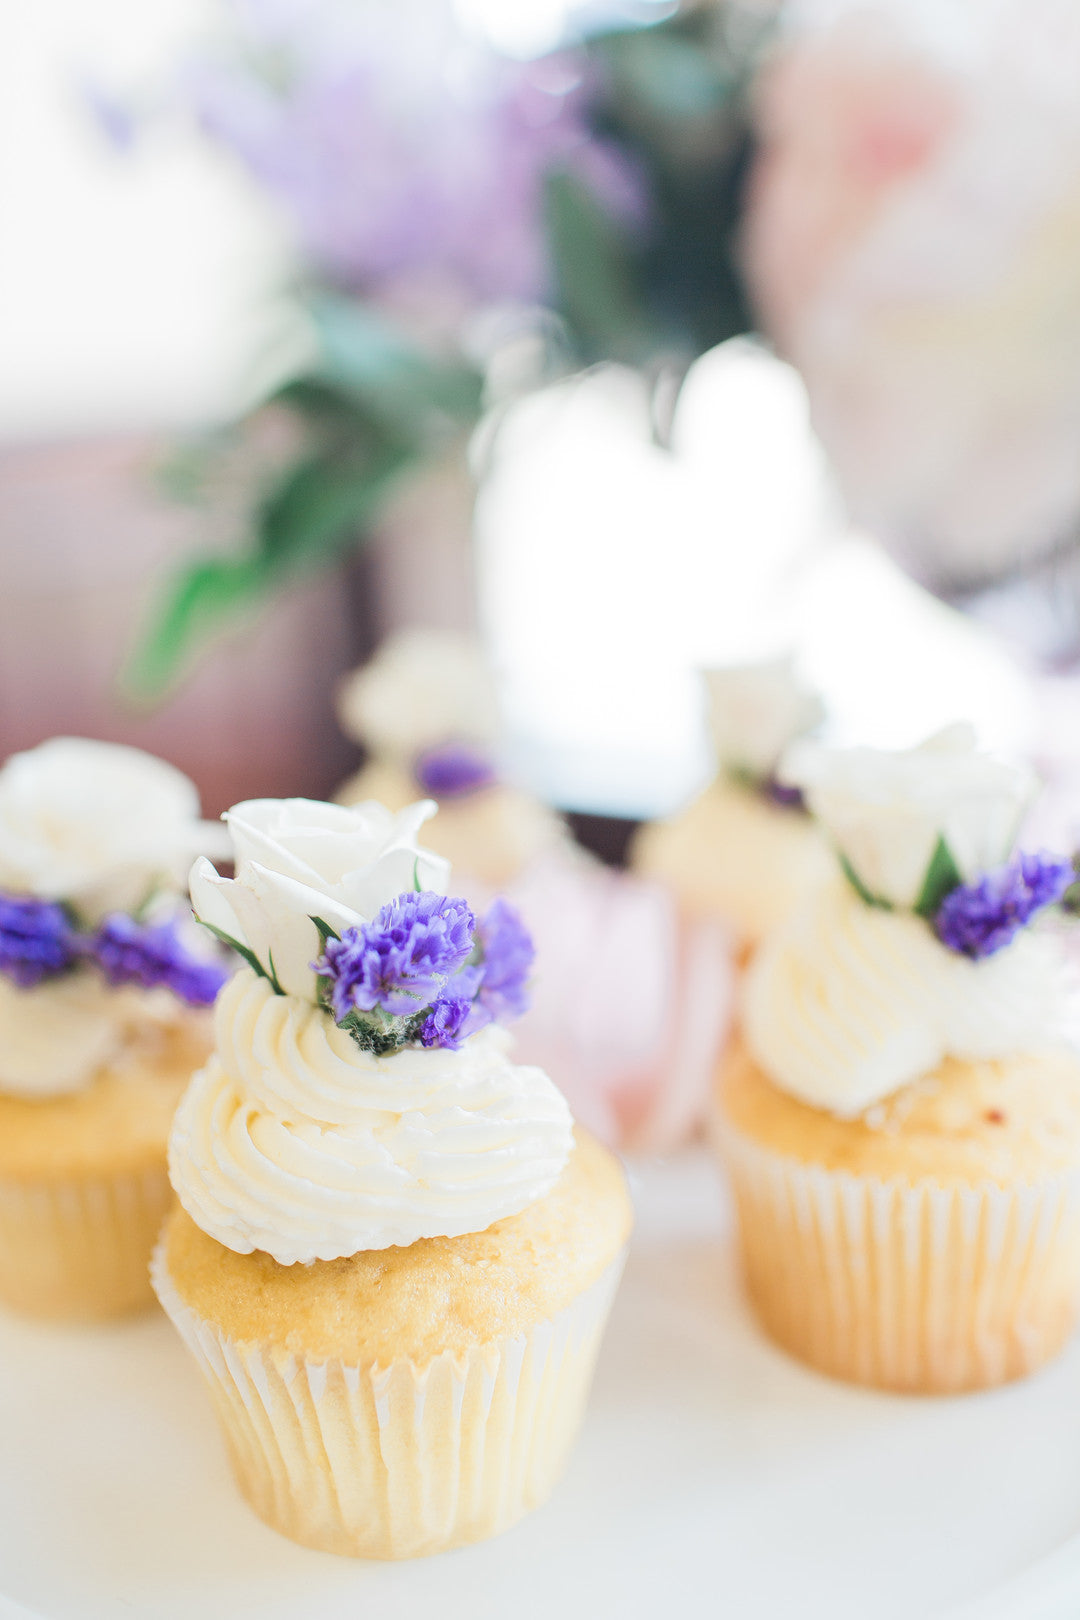 Cupcakes | Tips For the Perfect Floral Bridal Shower | Kate Aspen